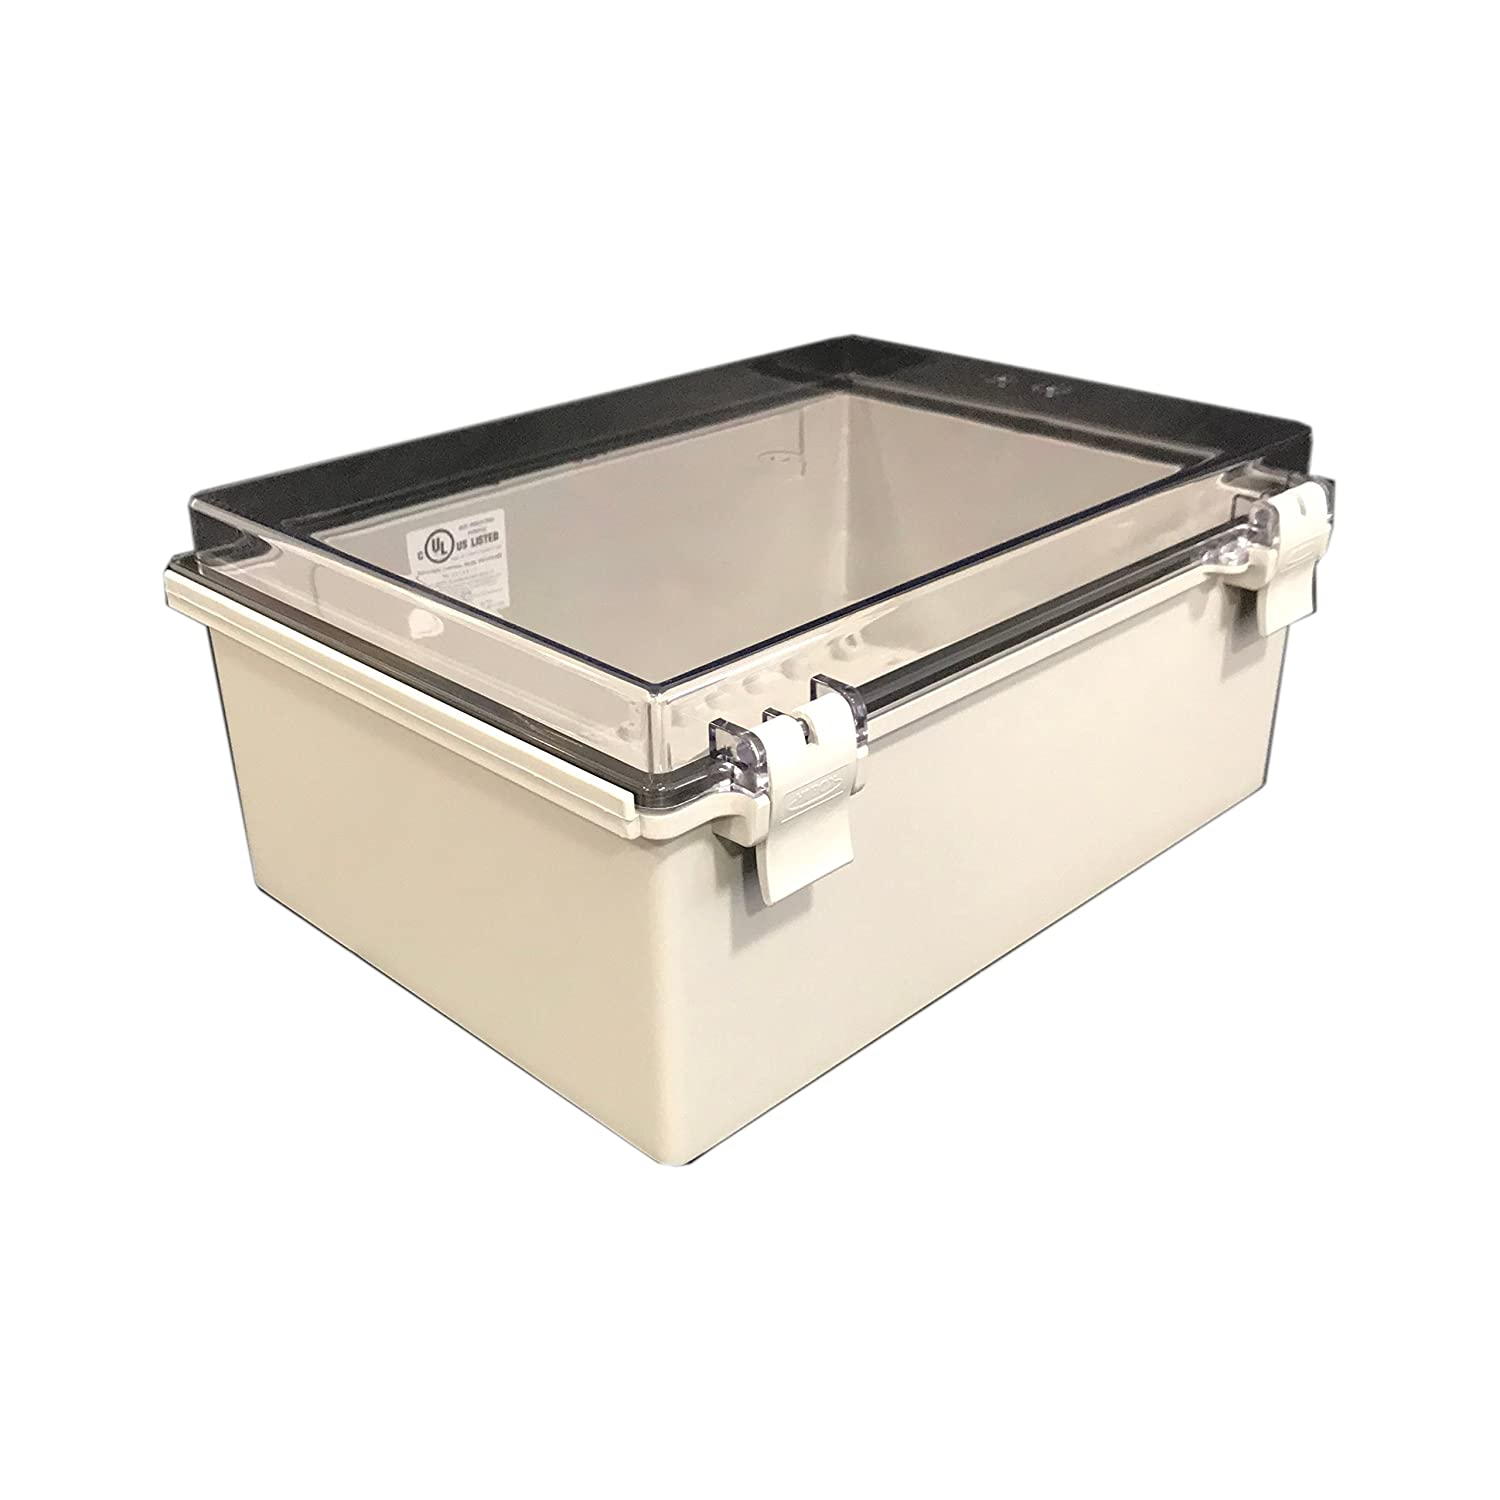 BUD Industries NBF-32422 Recommended Plastic New Free Shipping Outdoor Economy with NEMA Box C